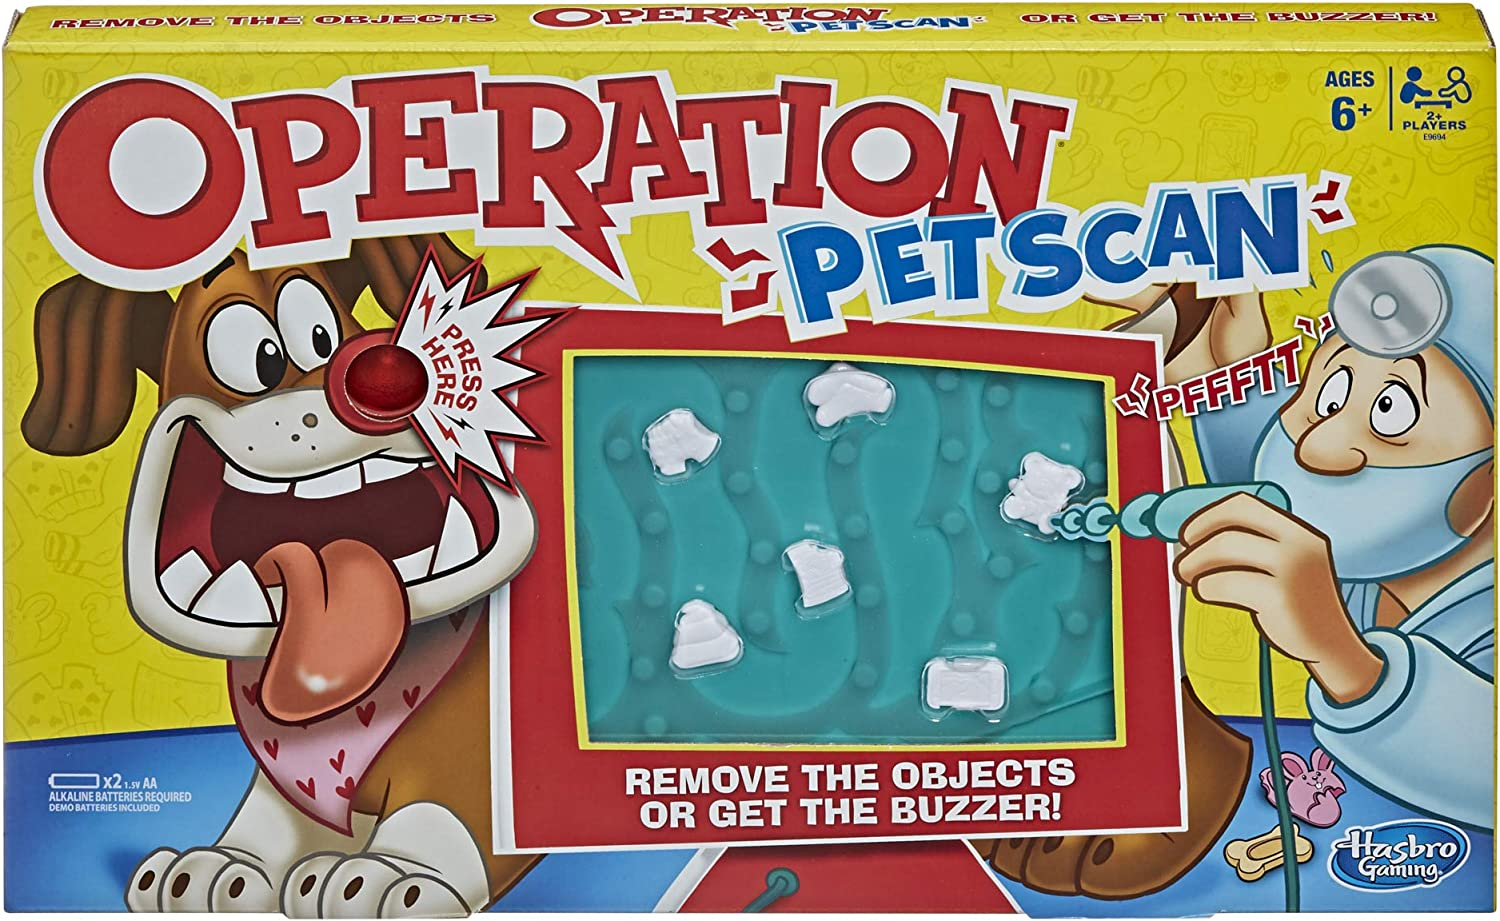 Operation Pet Scan Board Game for 2 or More Players, Kids Ages 6 and Up, with Silly Sounds, Remove The Objects or Get The Buzzer